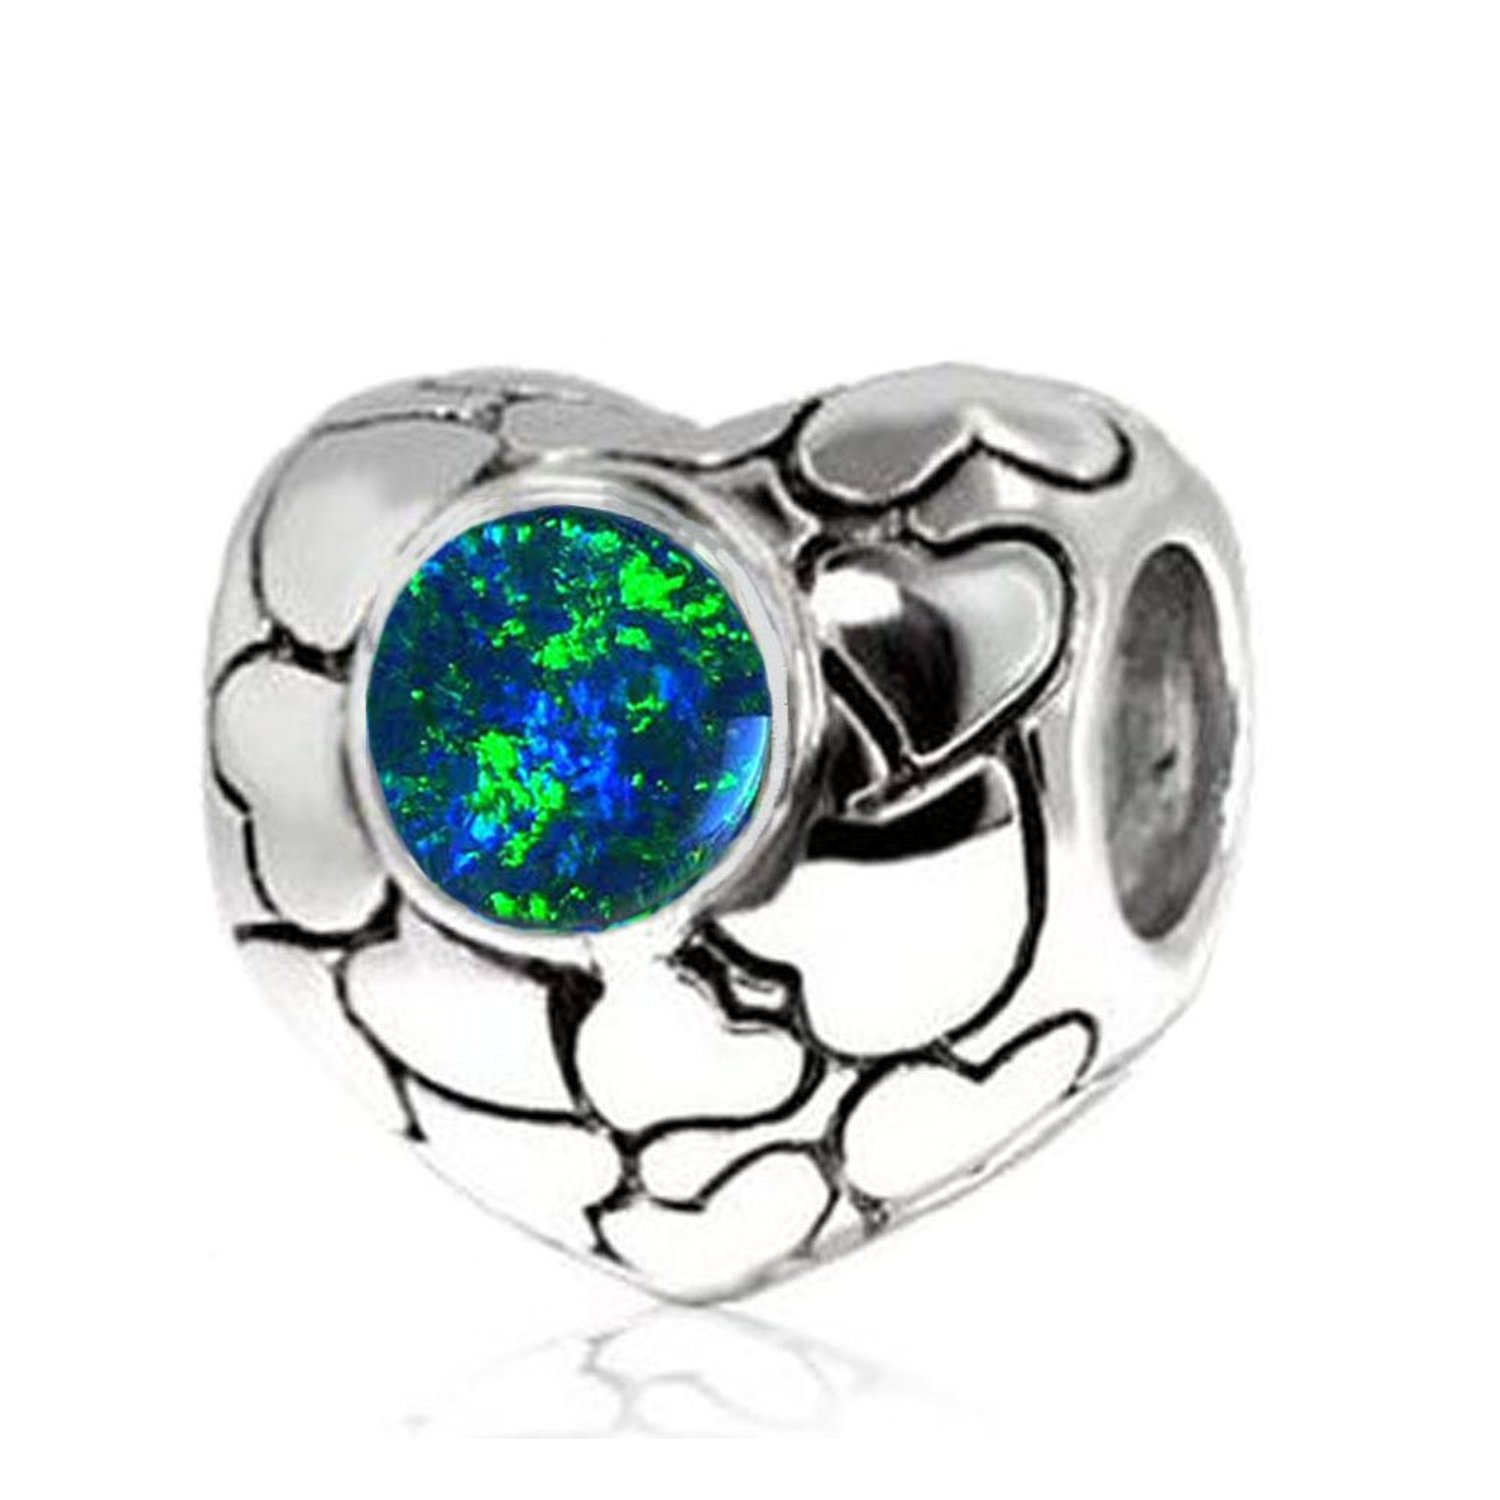 e13b6d118 Get Quotations · Jovana Sterling Silver Love Hearts Bead Charm with Lab  Blue Opal, Fits Pandora Bracelet